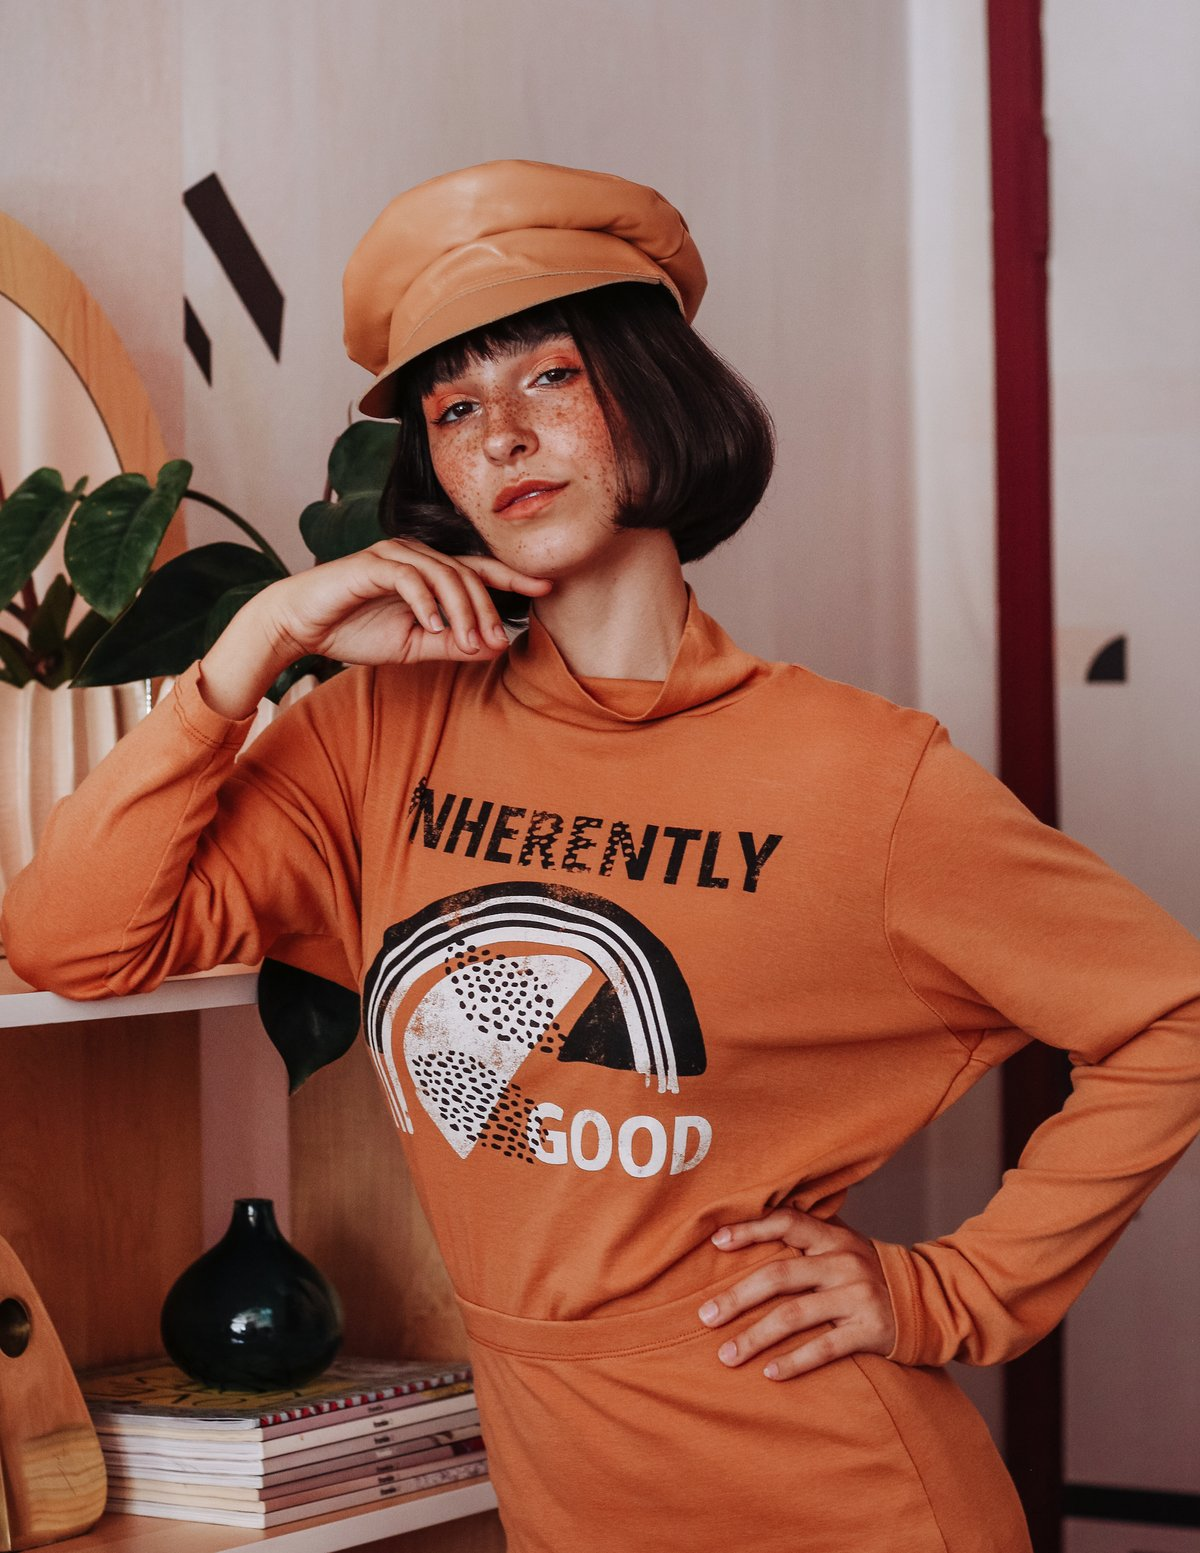 Dazey LA Inherently Good Turtleneck